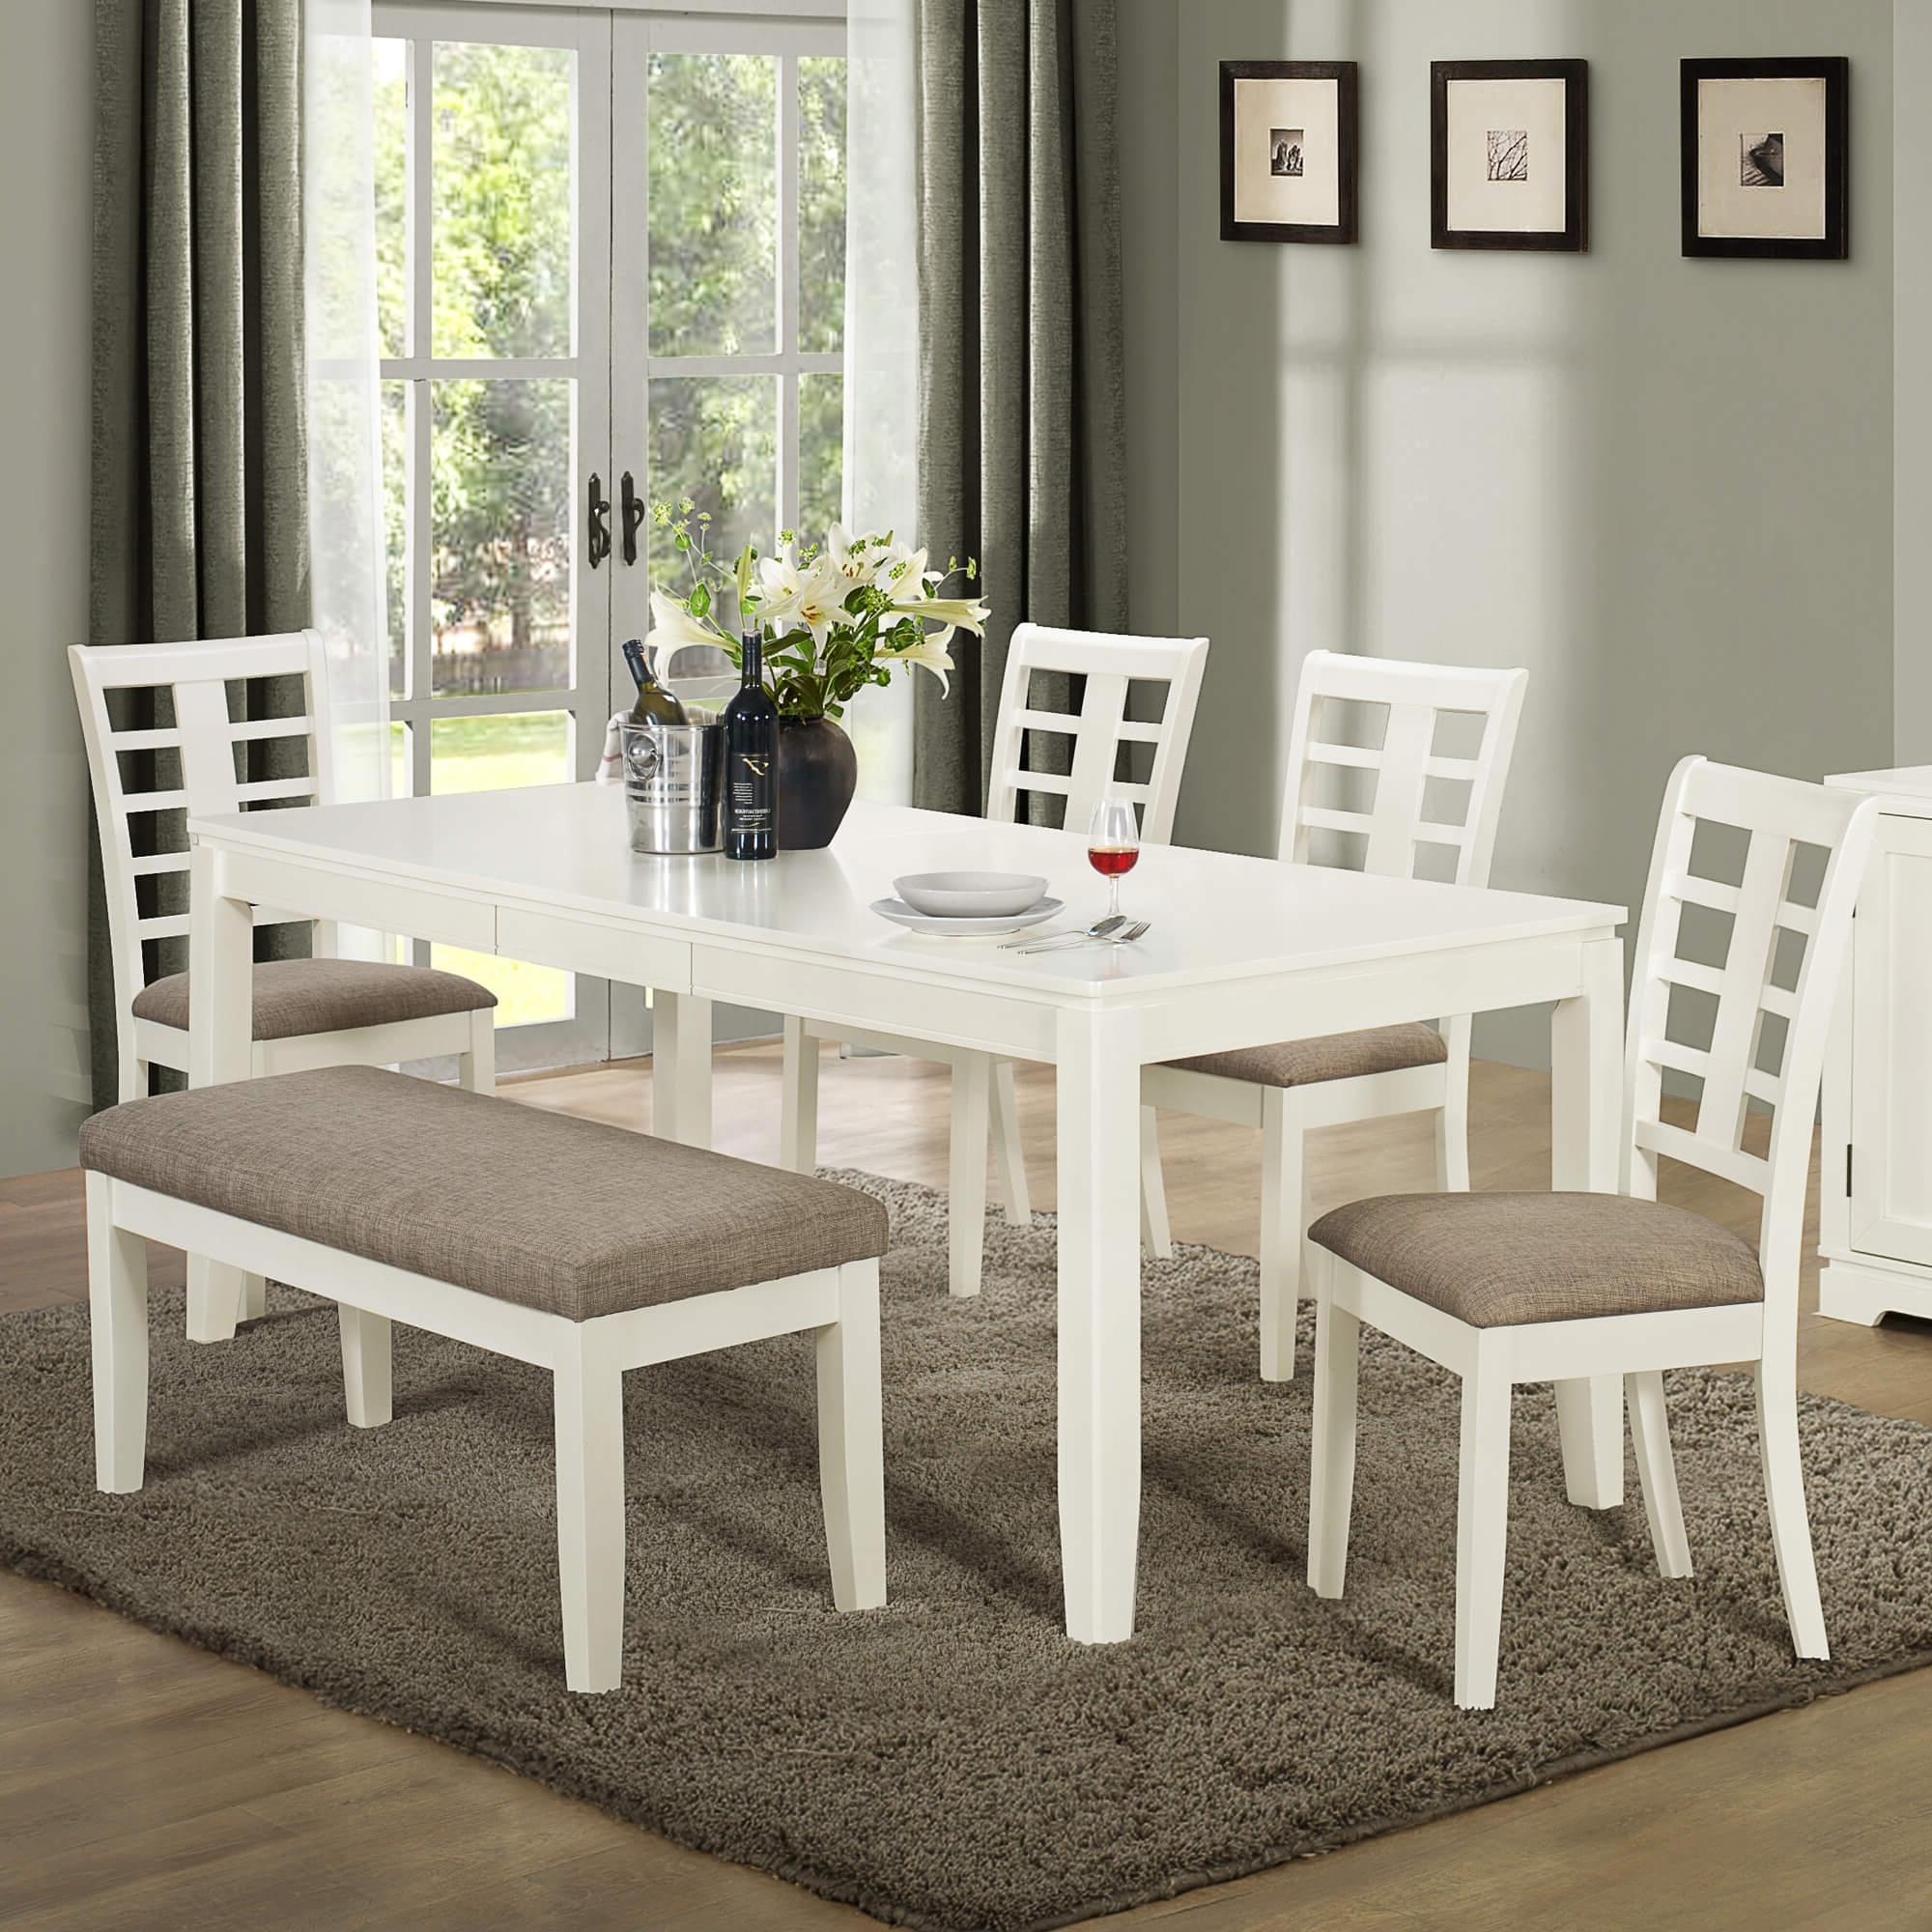 26 Dining Room Sets (Big And Small) With Bench Seating (2018) with Well-liked Craftsman 5 Piece Round Dining Sets With Uph Side Chairs